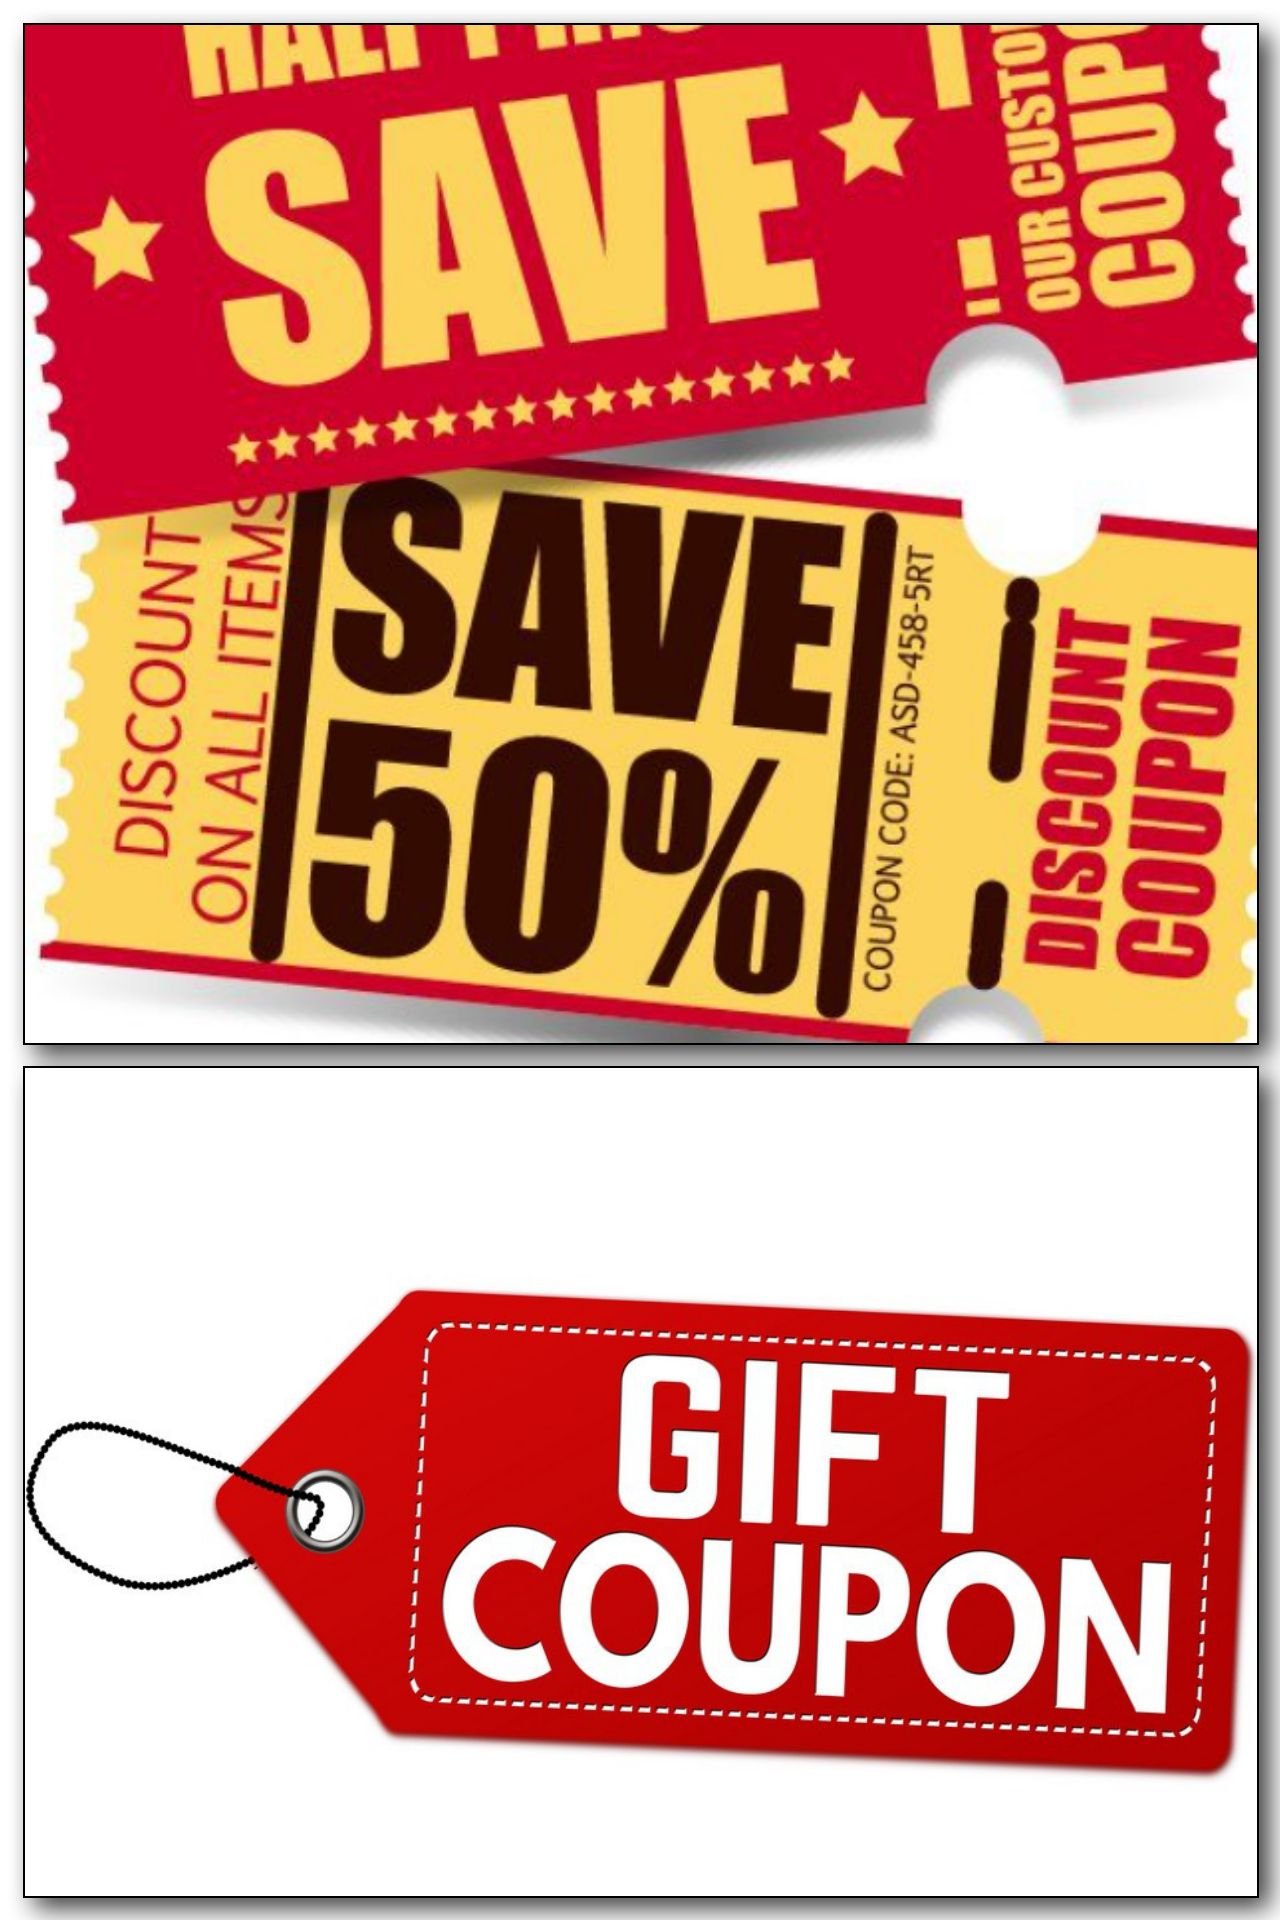 Check Facebook Page Coupons Cashback Gift Cards Discounts They Have Great Deals In 2020 Gift Card Gift Coupons Cards